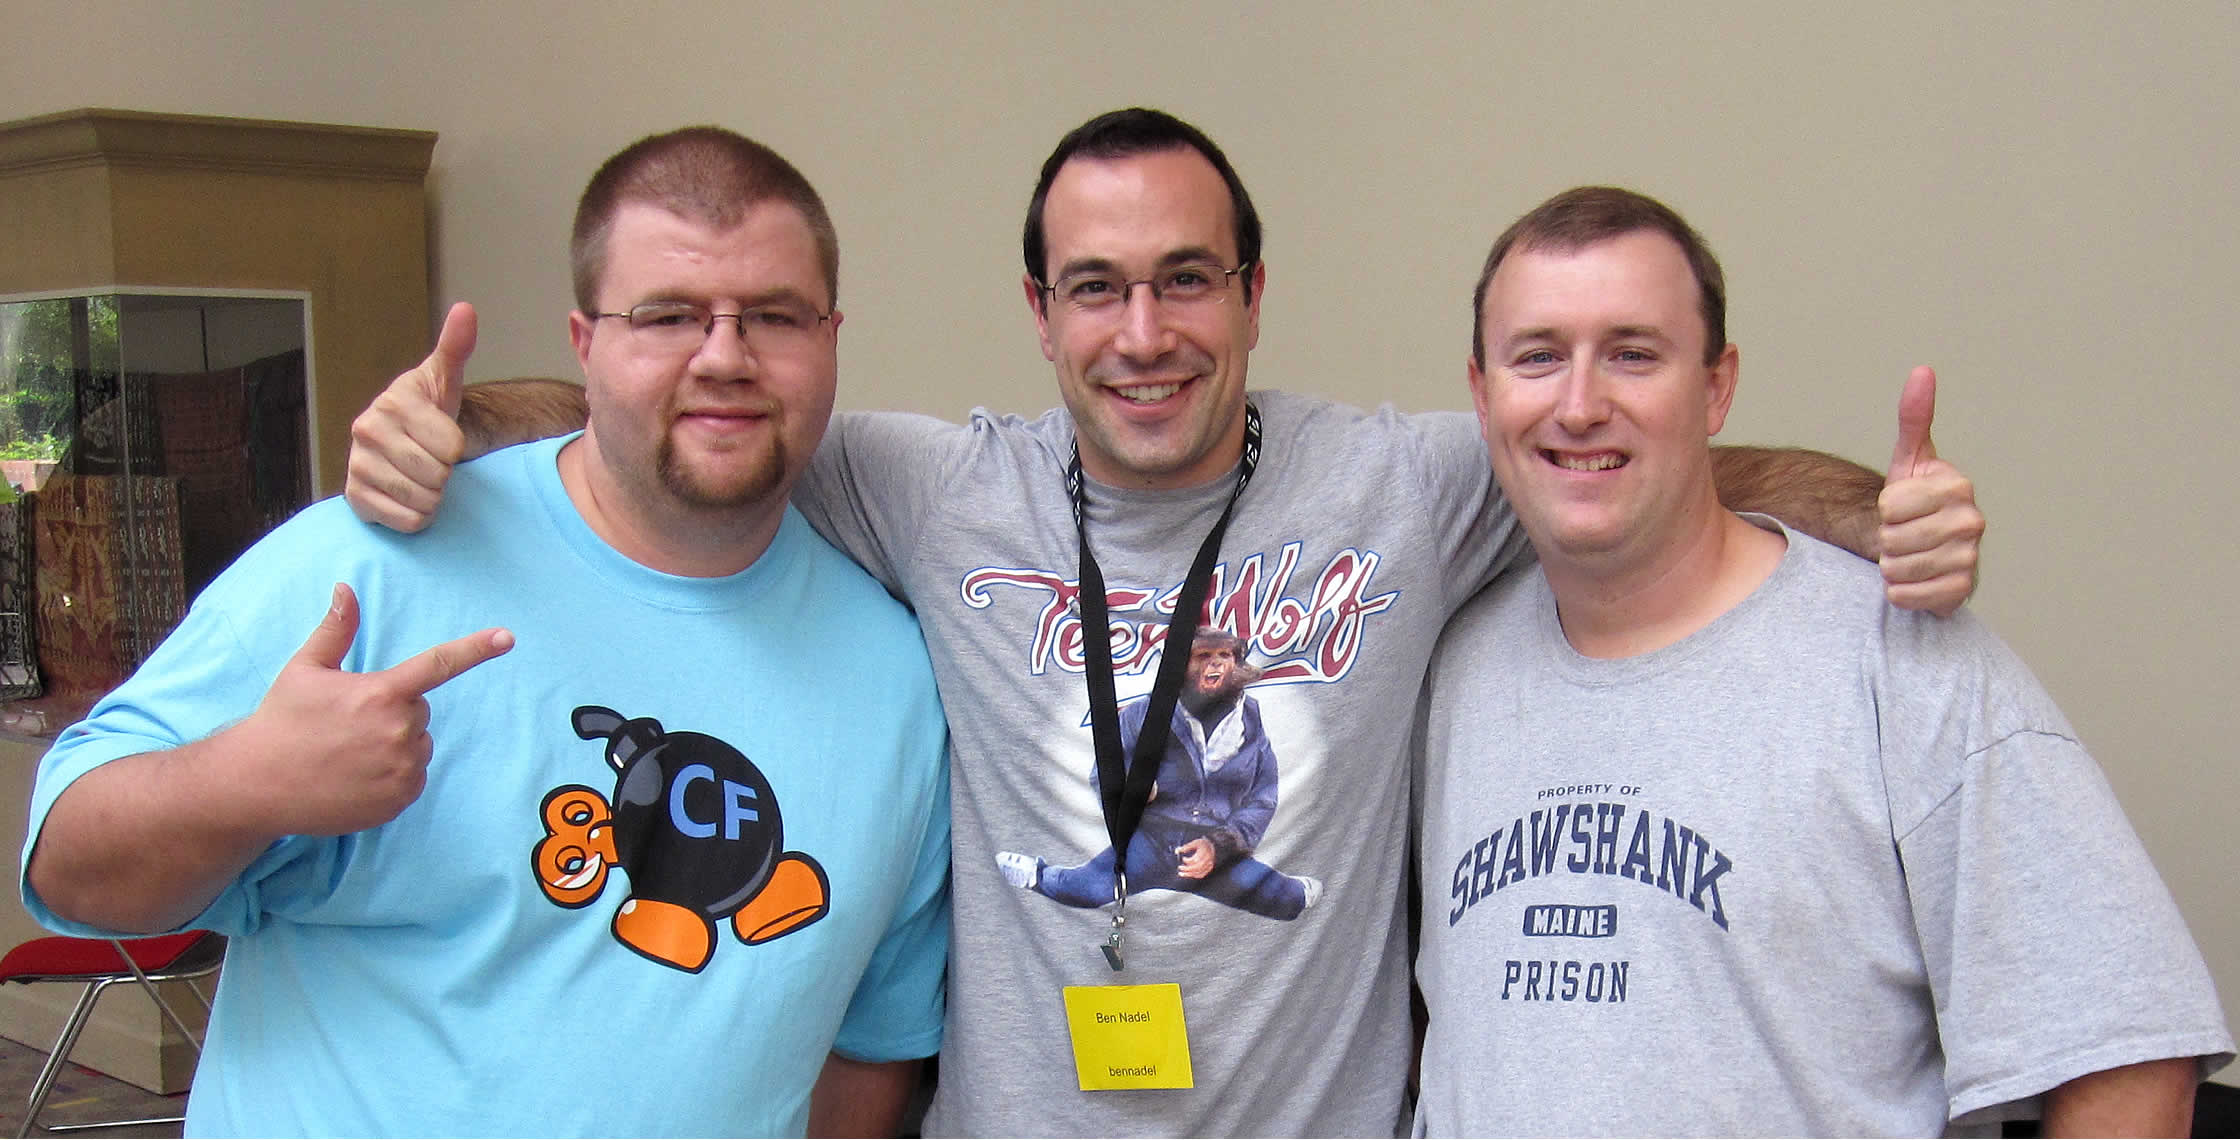 Ben Nadel at NCDevCon 2011 (Raleigh, NC) with: Joe Casper and Chris Bickford